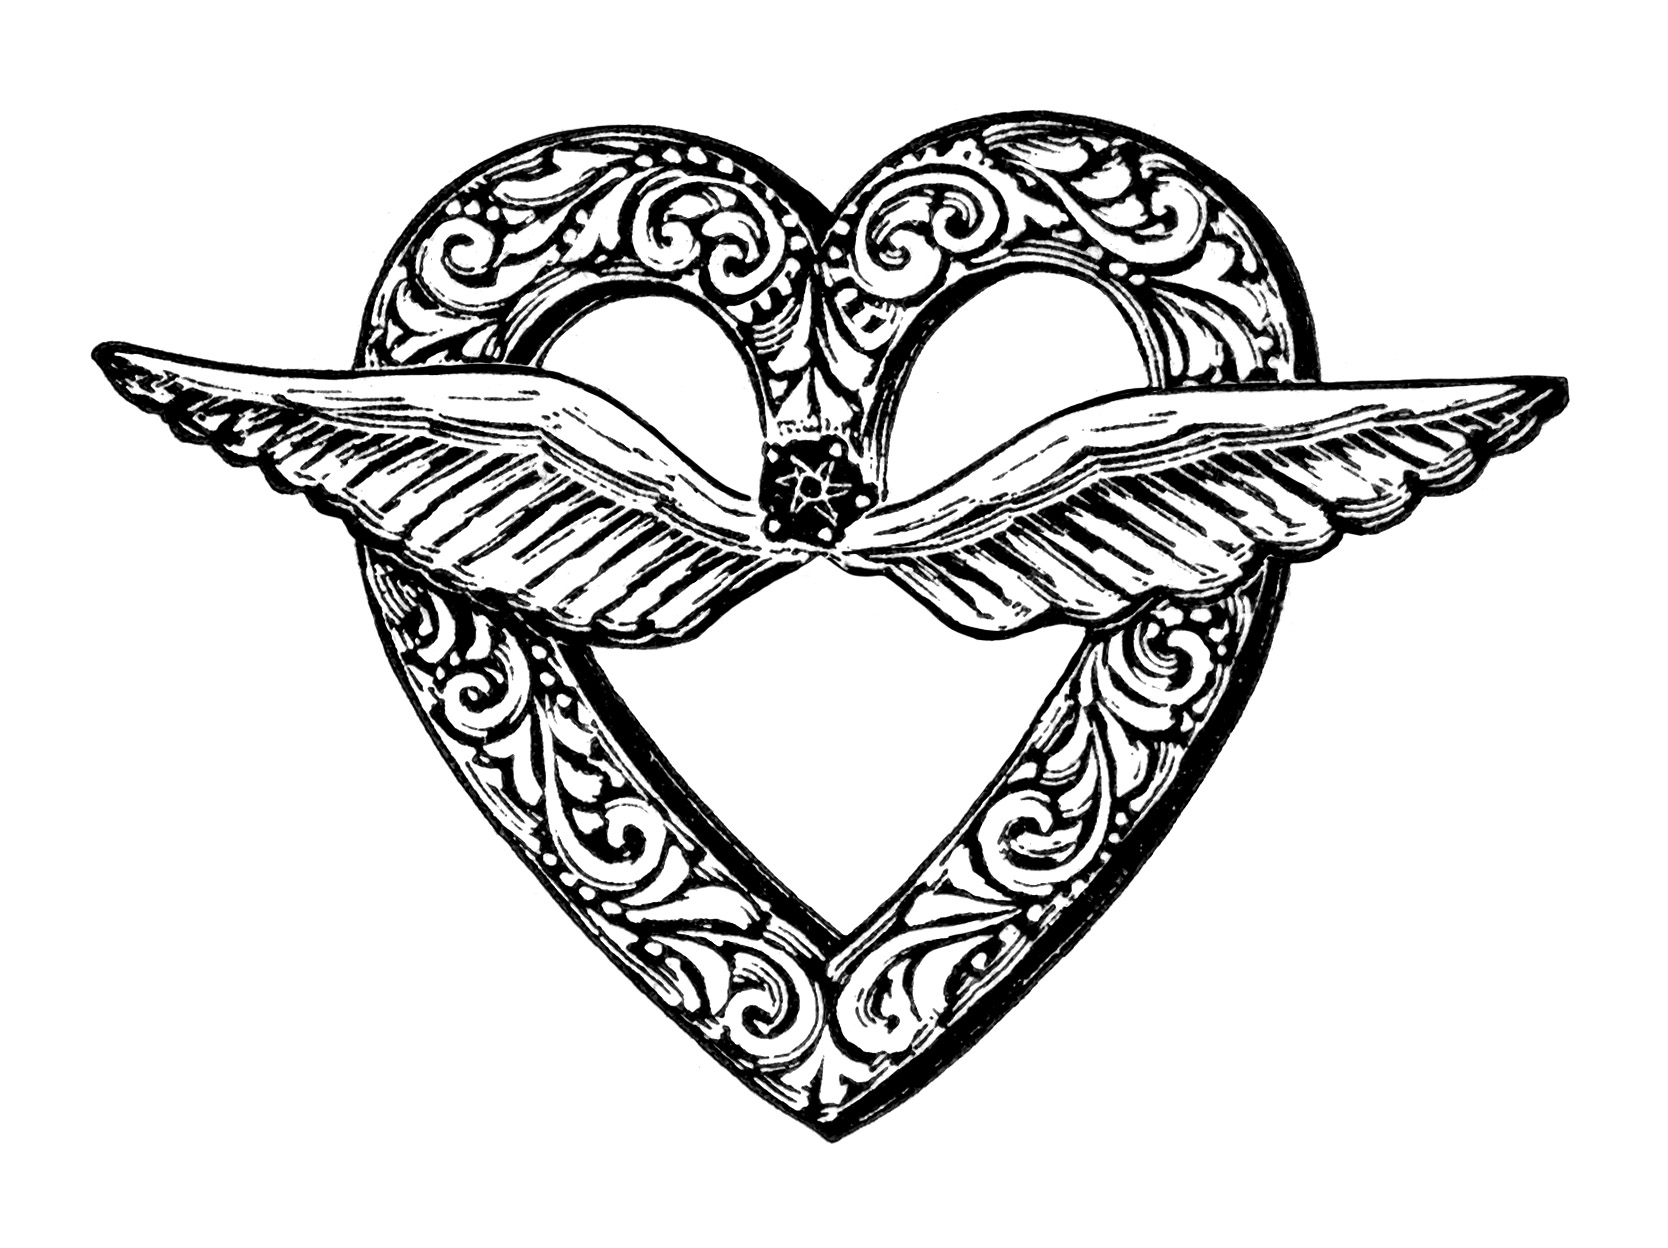 Heart Shaped Brooch Clip Art